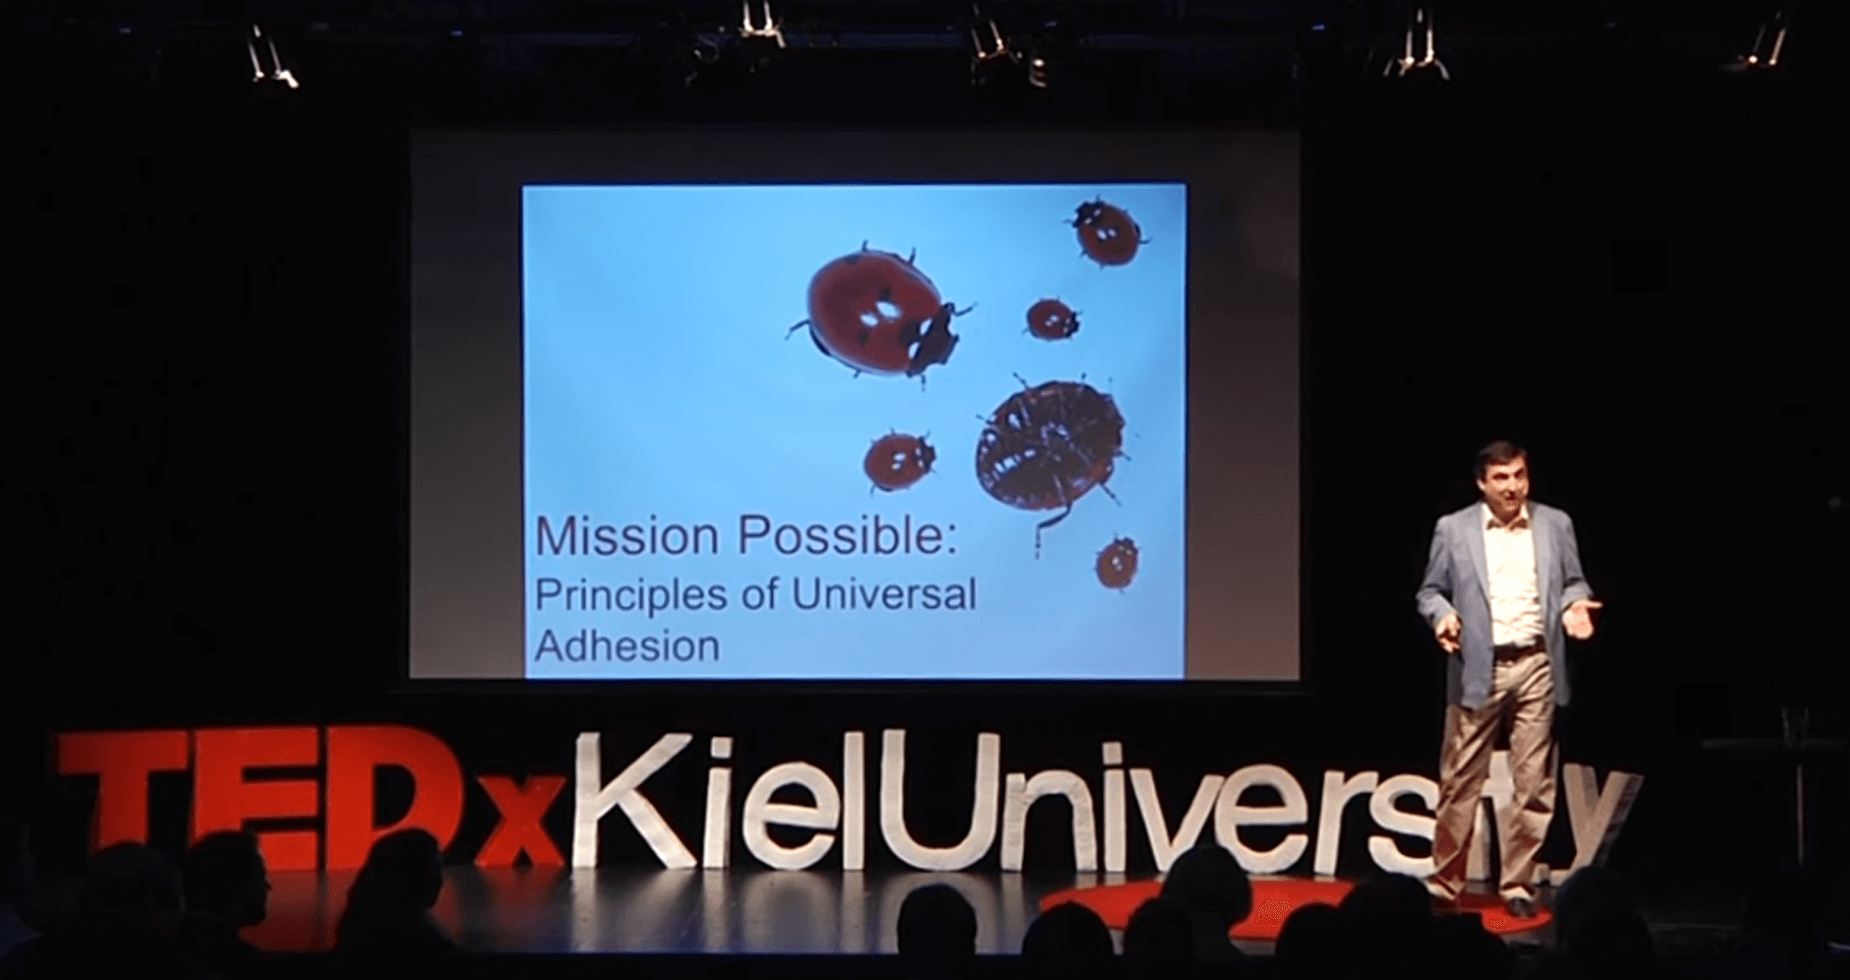 TEDxKielUniversity - Mission Possible Principles of Universal Adhesion